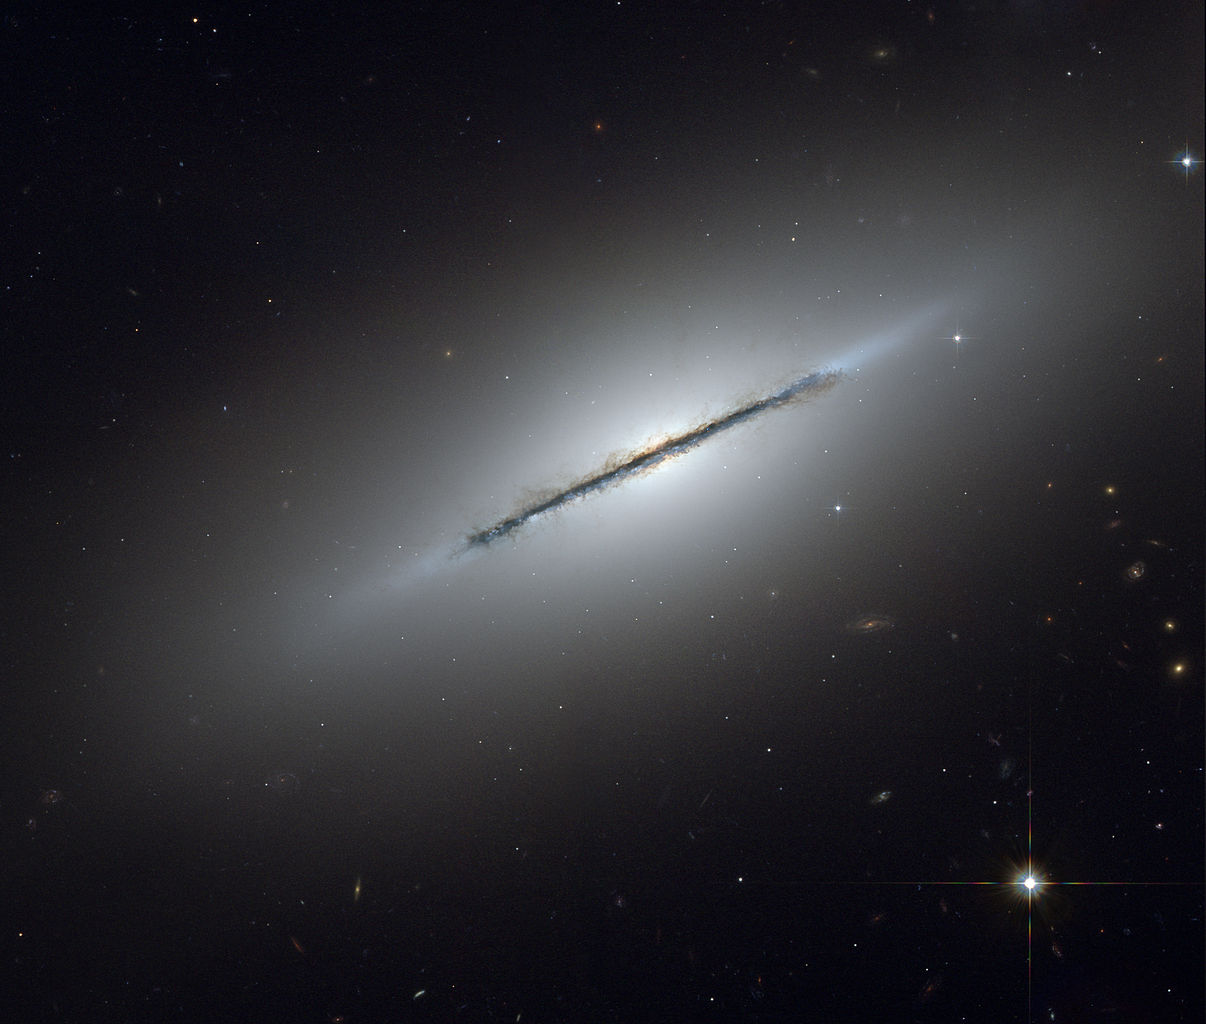 spindle galaxy,m102,ngc 5866